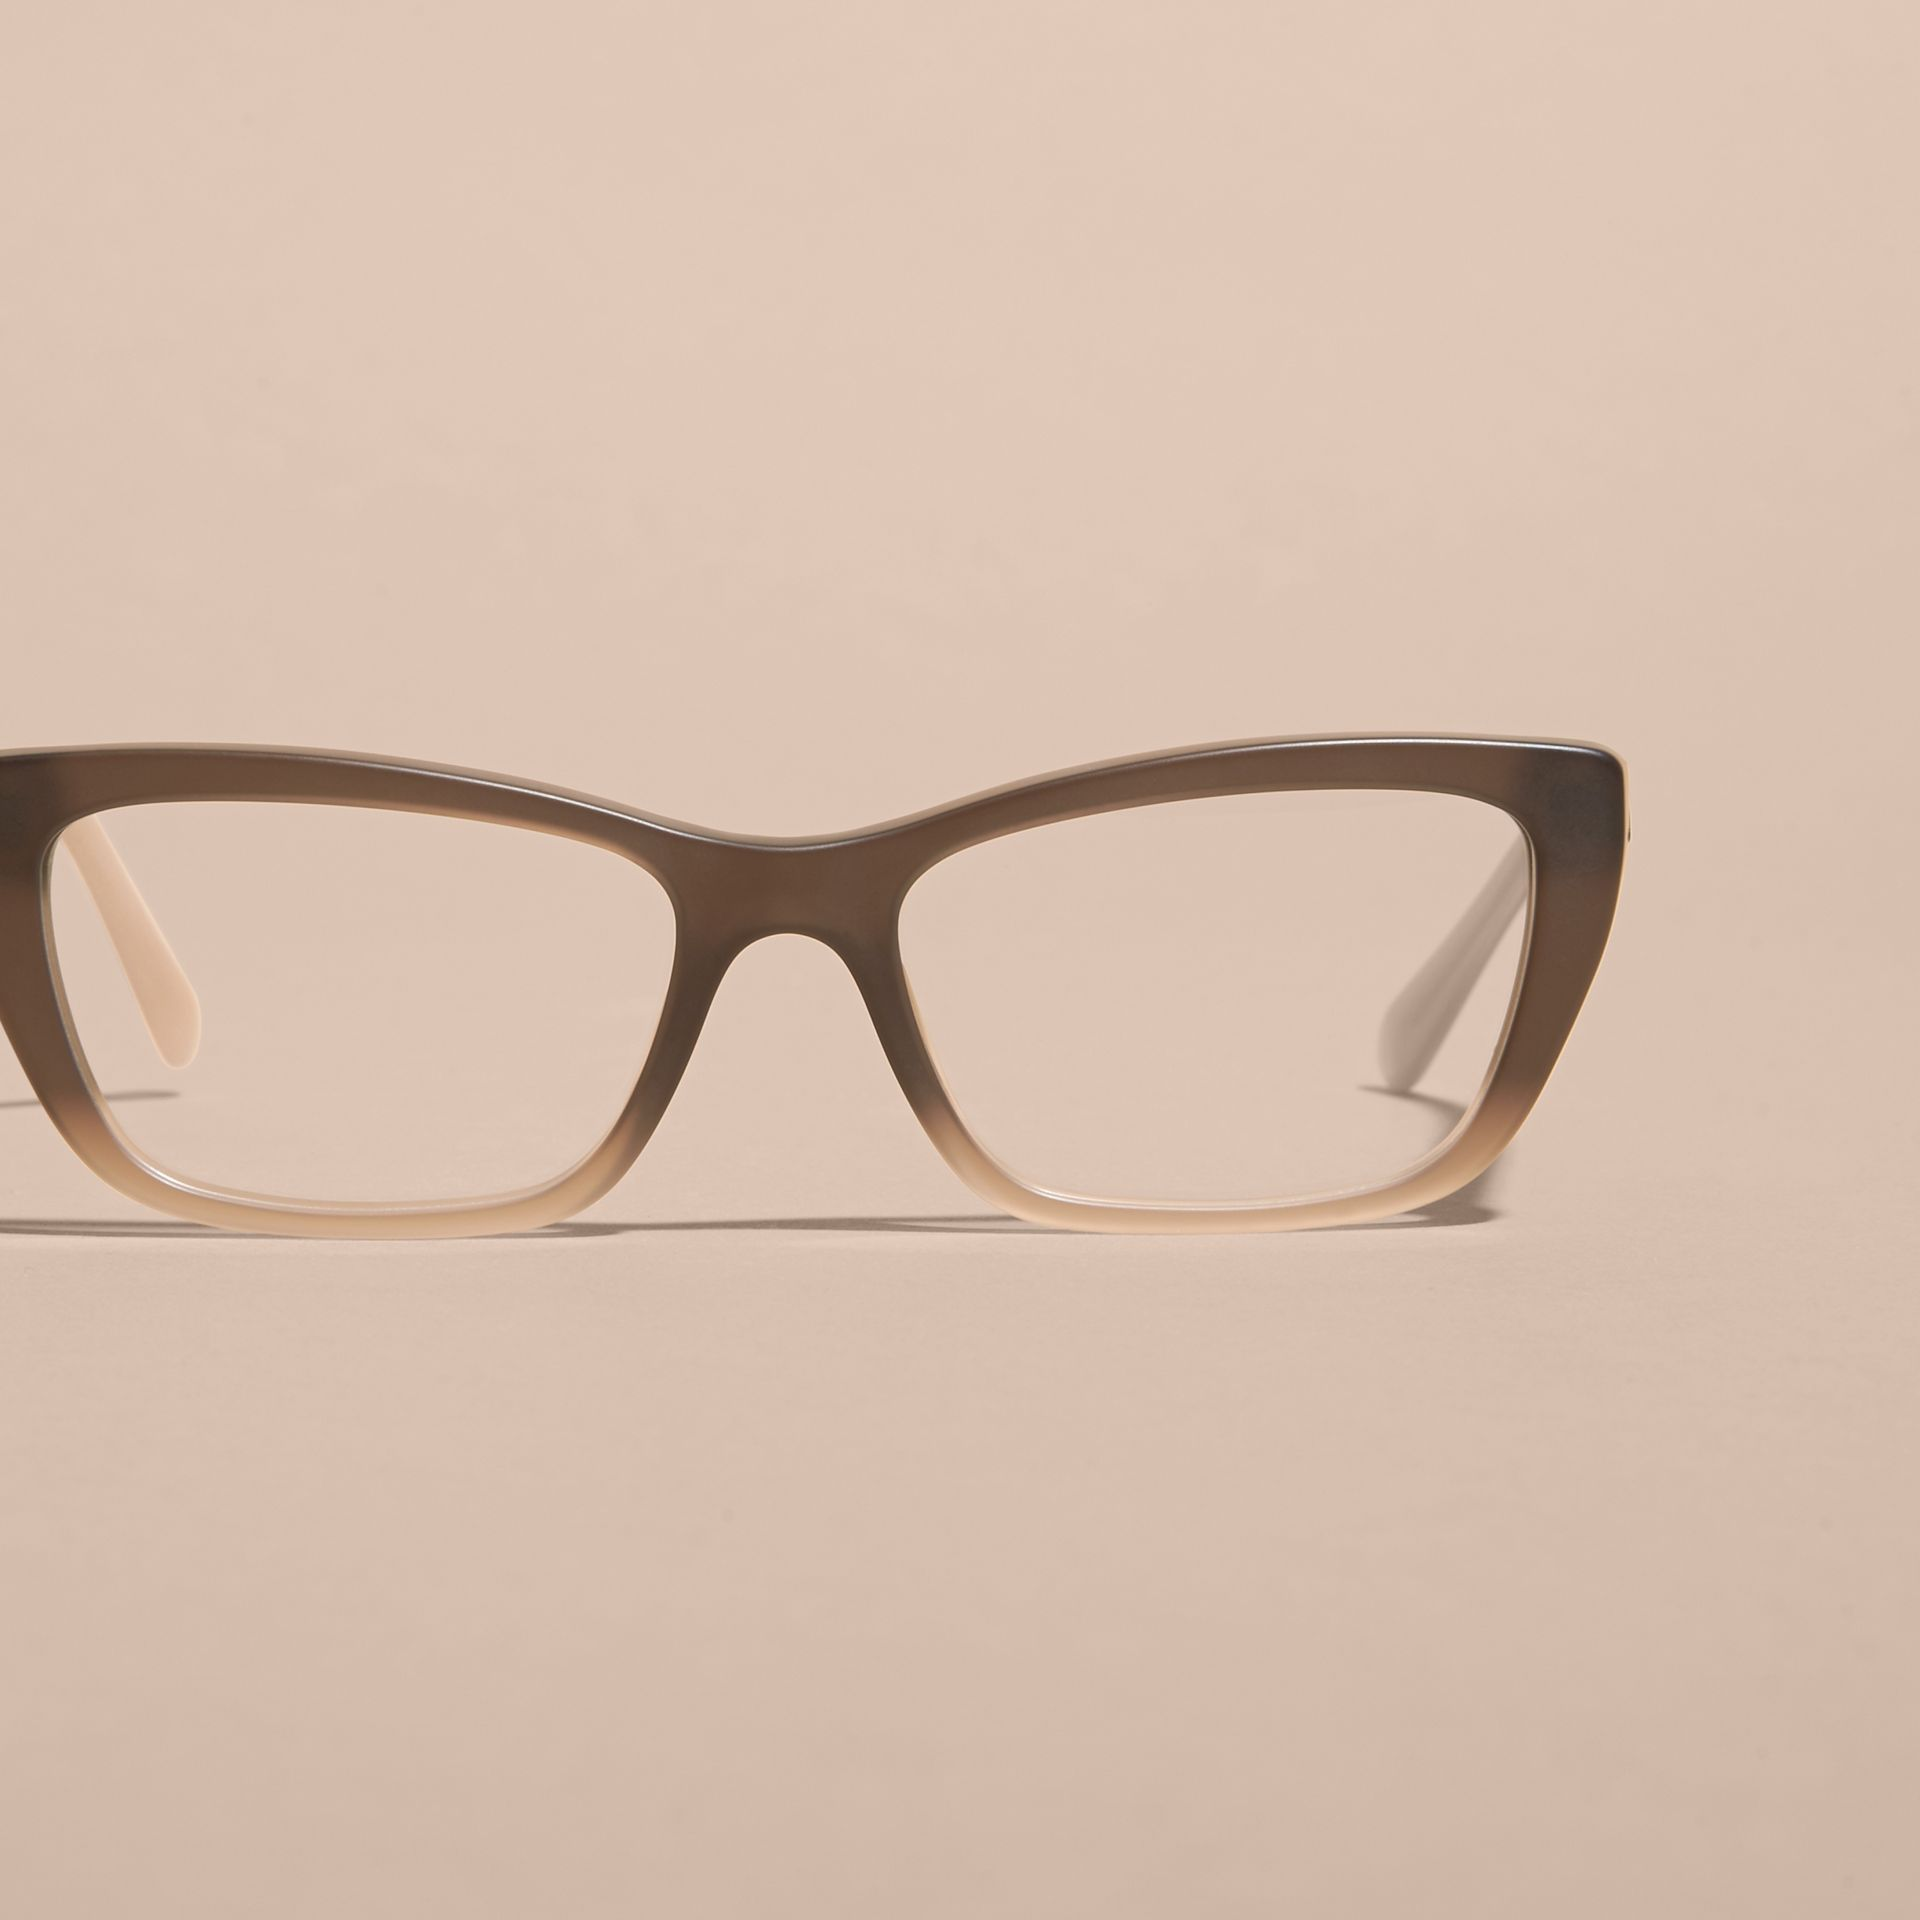 Carnation melange Check Detail Rectangular Cat-eye Optical Frames Carnation Melange - gallery image 3